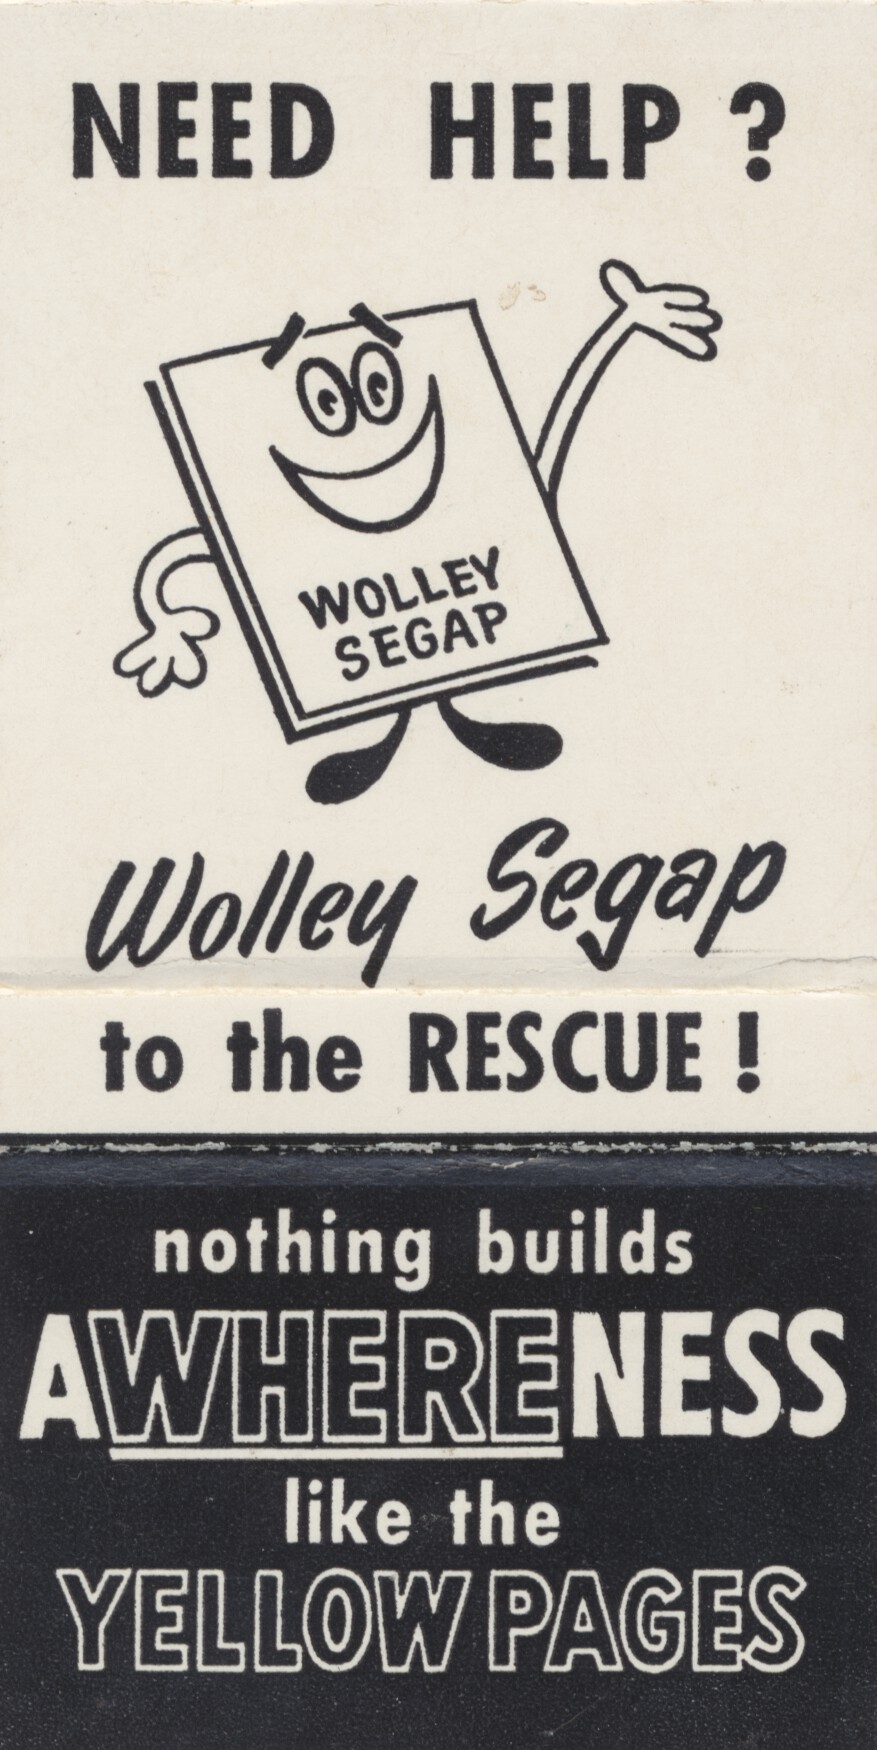 Wolley Segap To The Rescue CARDBOARD AMERICA